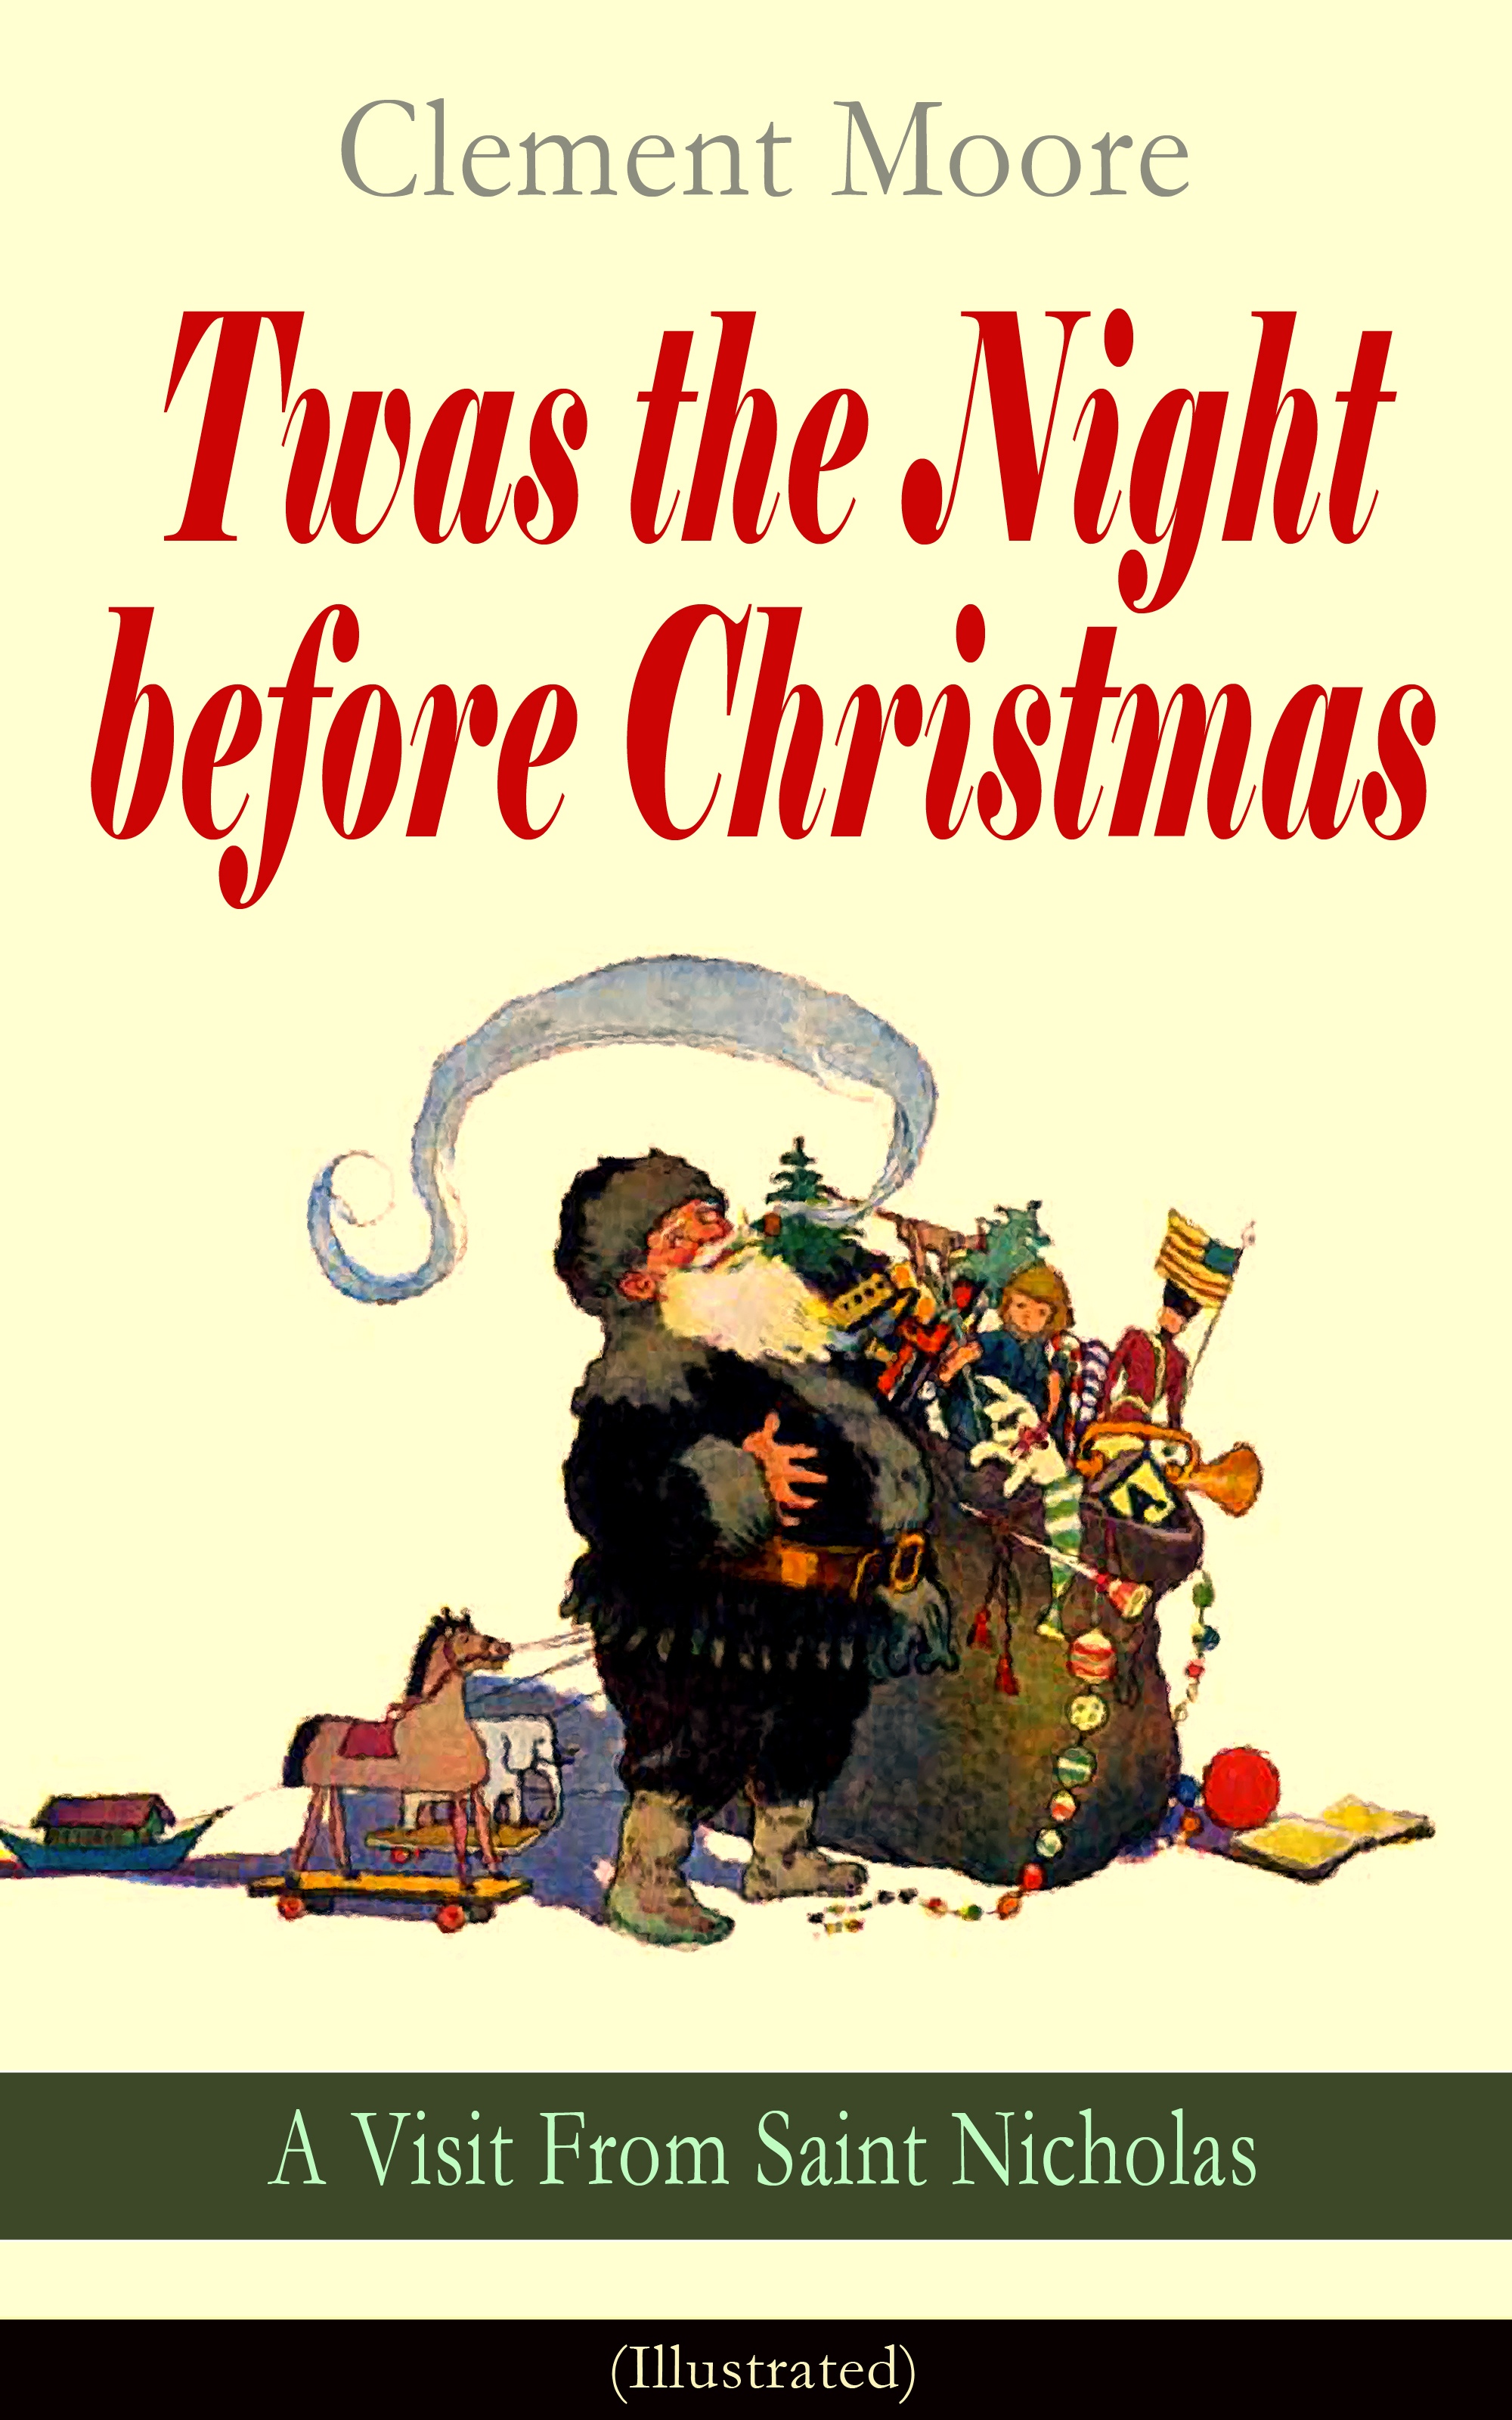 Clement Moore Twas the Night before Christmas - A Visit From Saint Nicholas (Illustrated) tracye a moore the diversity dilemma